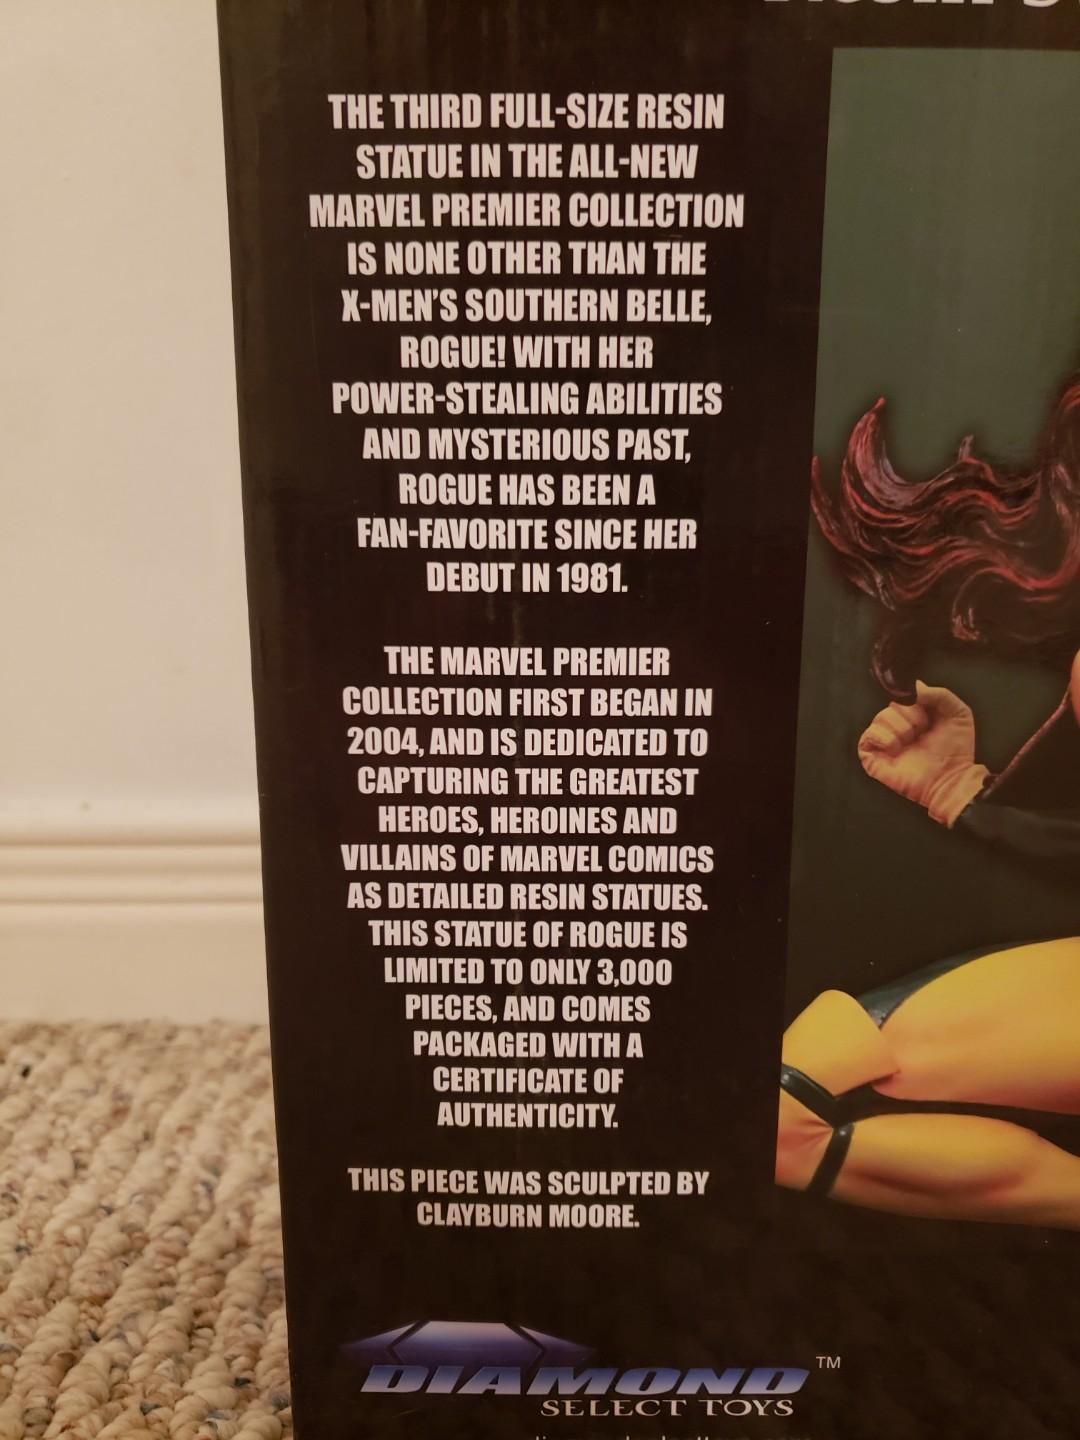 Rogue Statue by Diamond Select X-MEN Premier Collection Resin Statue